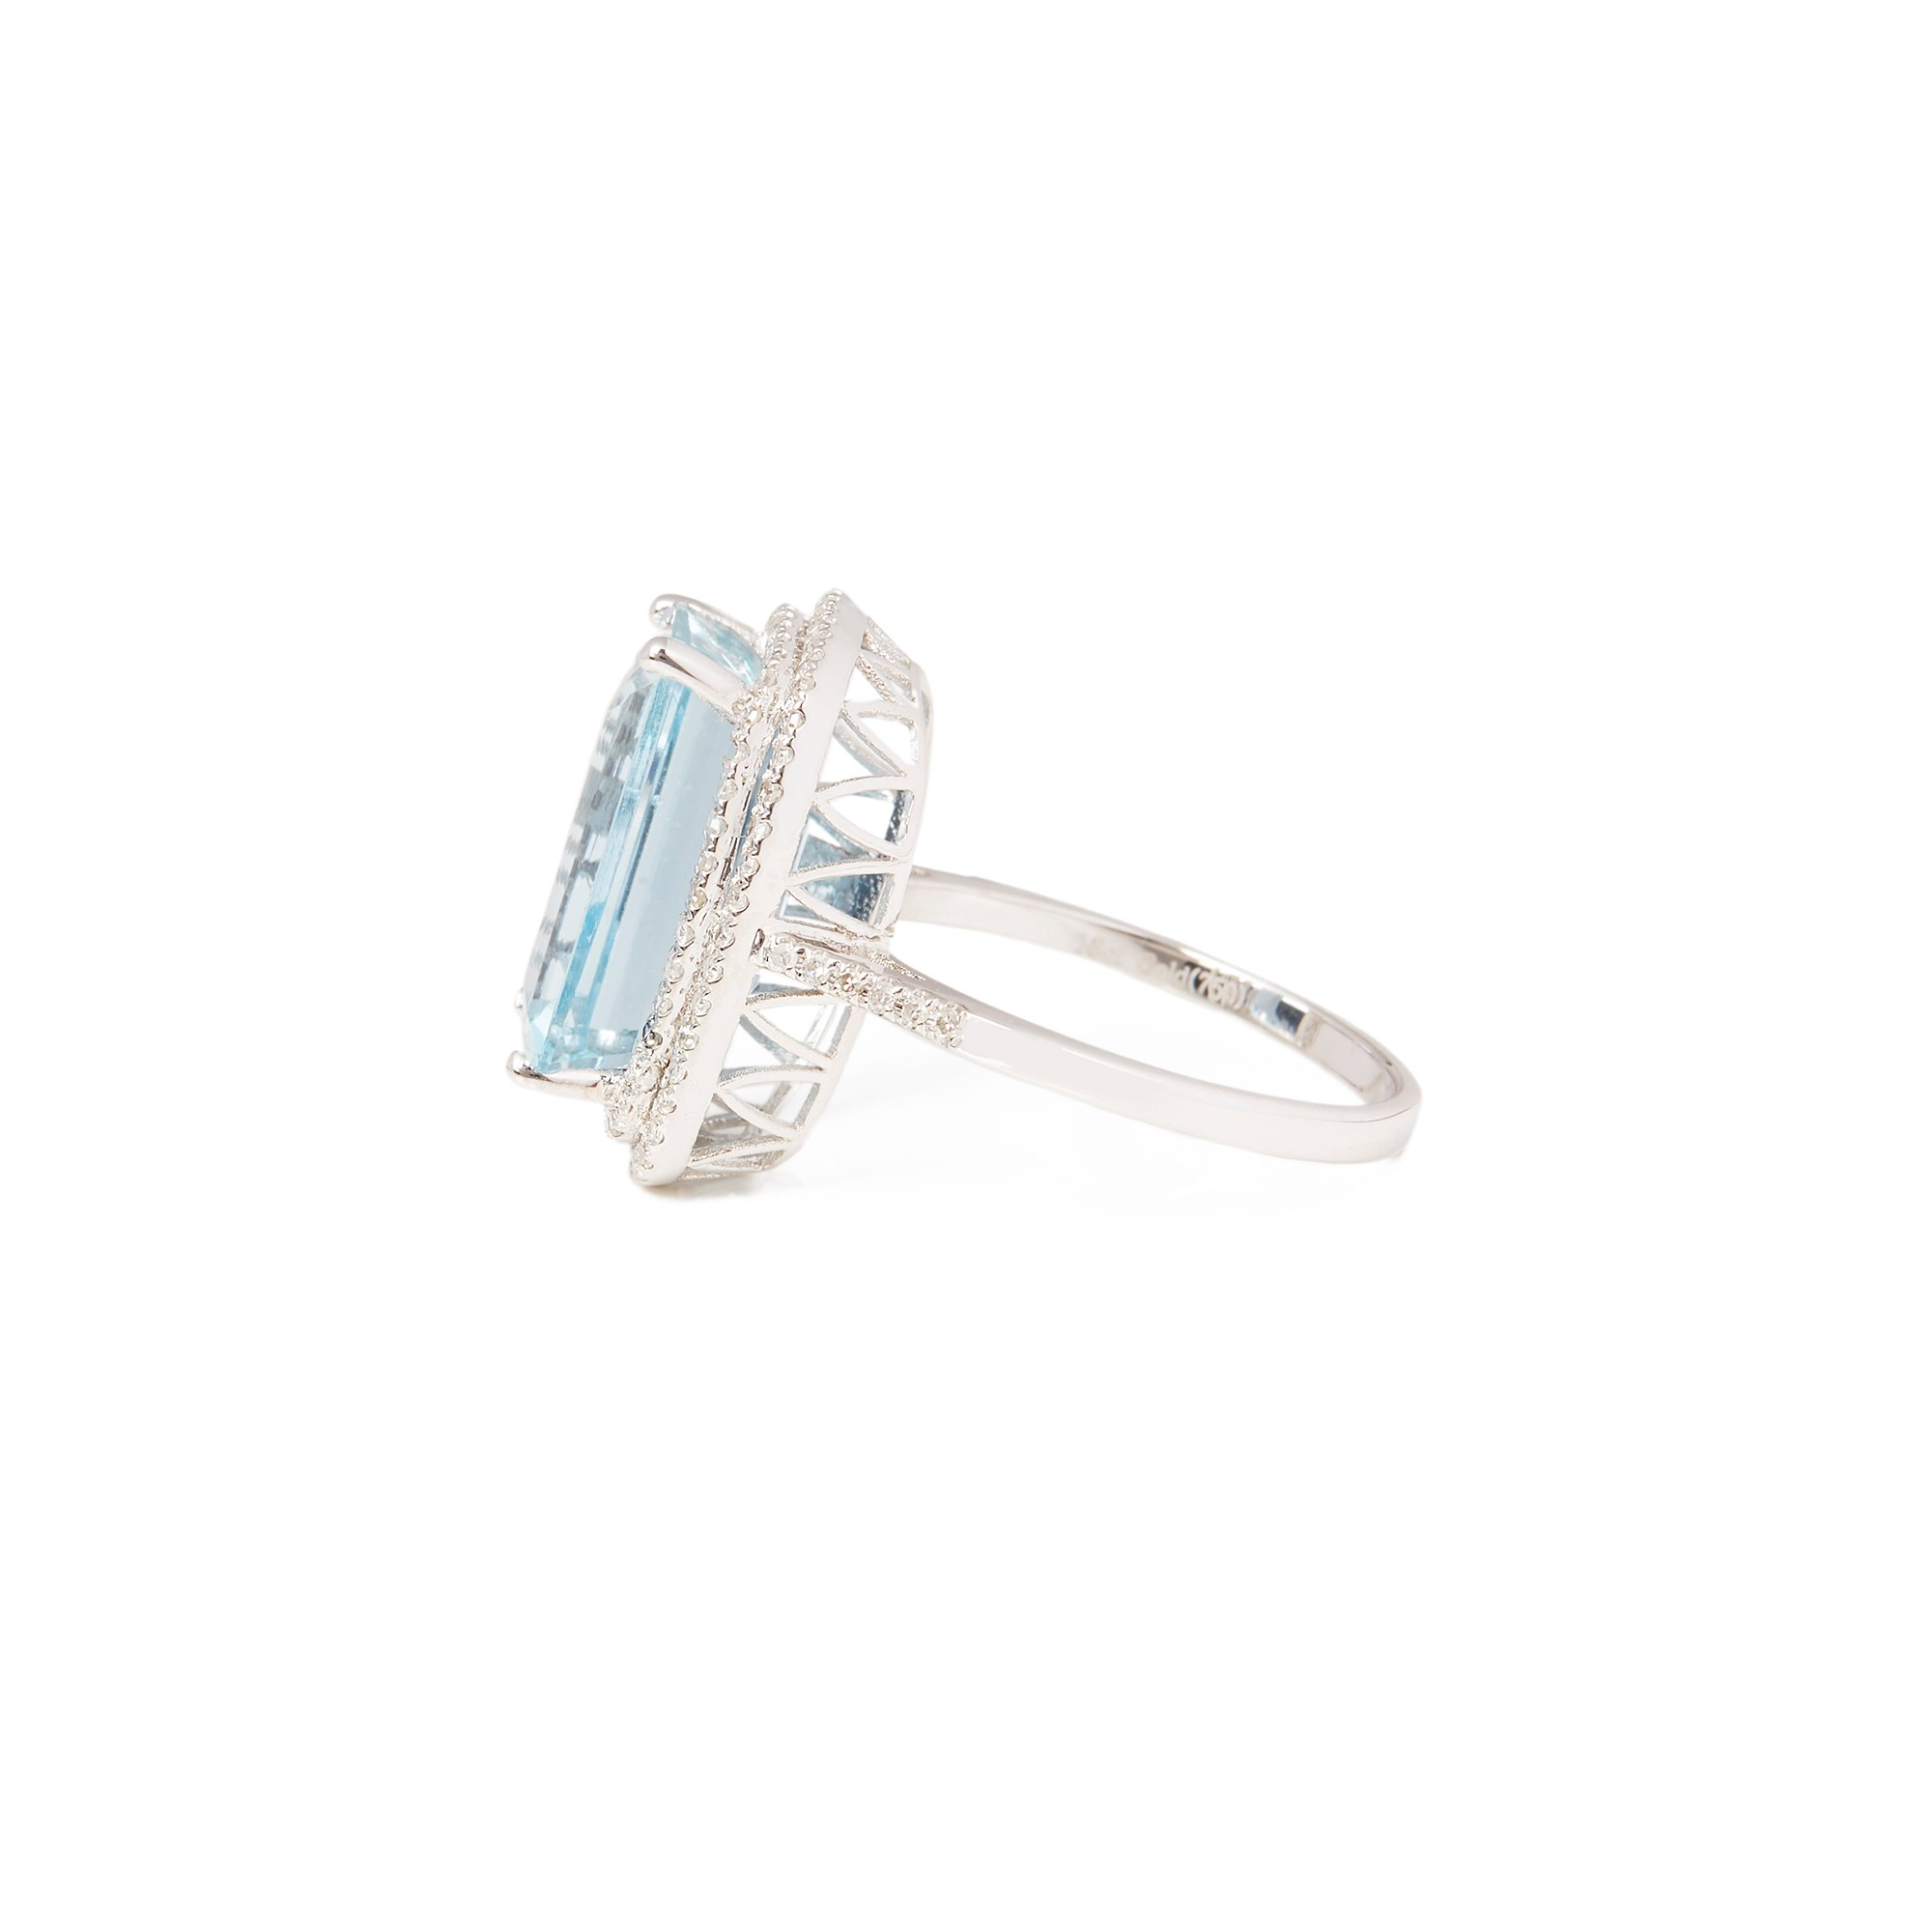 David Jerome Certified 7.92ct Octagonal Aquamarine and Diamond 18ct gold Ring